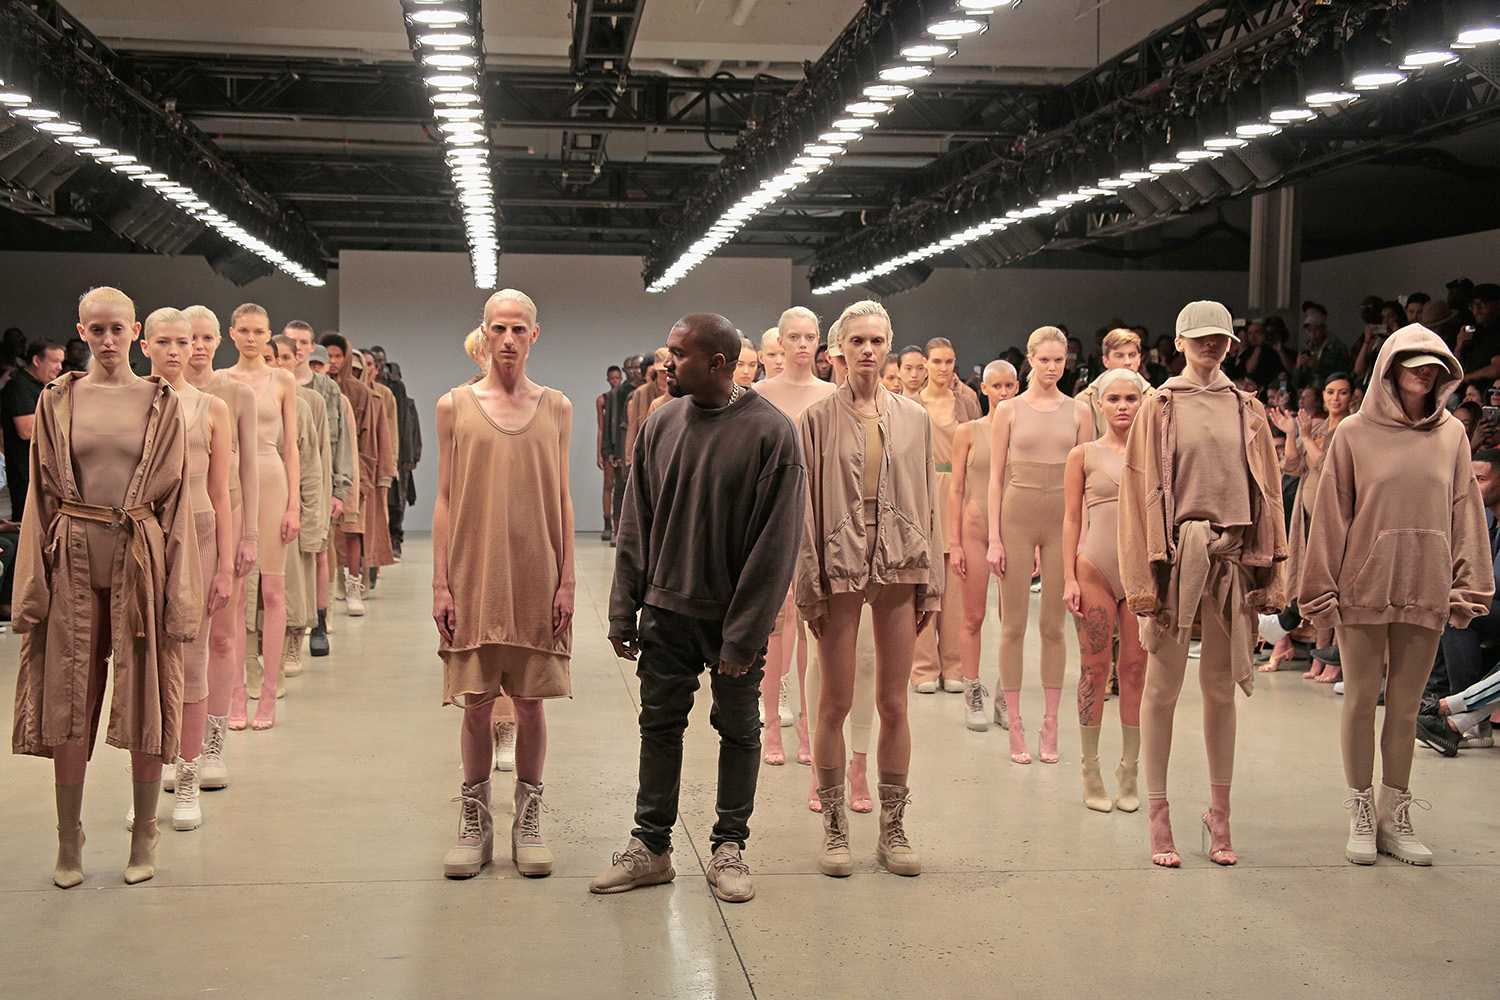 NEW YORK, NY - SEPTEMBER 16: Kanye West poses during the finale of Yeezy Season 2 during New York Fashion Week at Skylight Modern on September 16, 2015 in New York City. (Photo by Randy Brooke/Getty Images for Kanye West Yeezy)